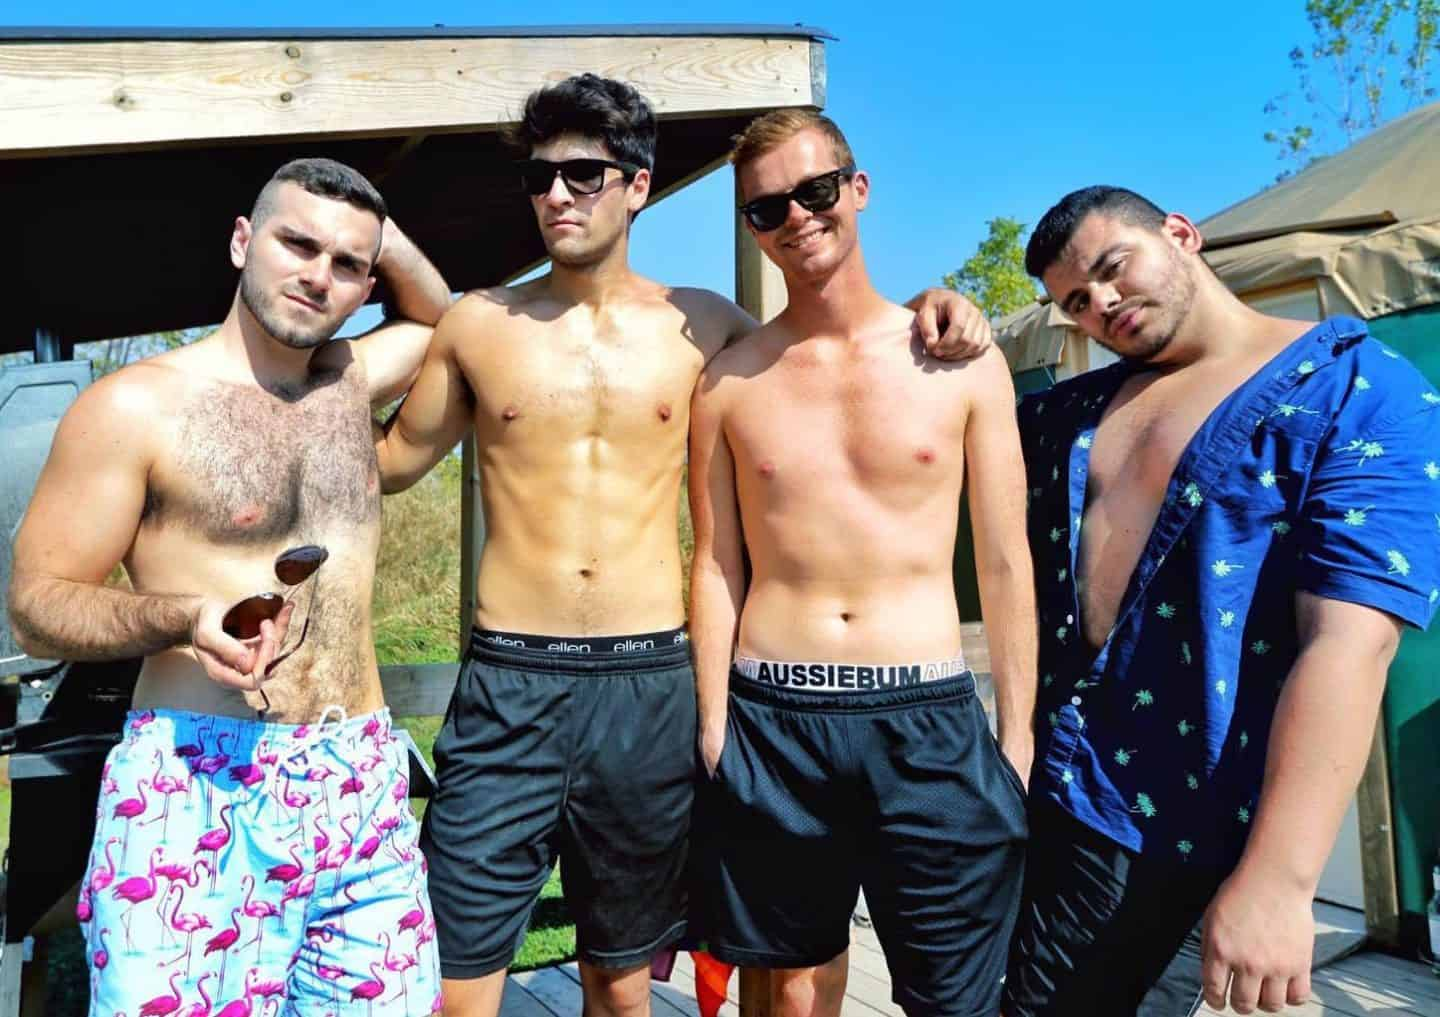 Photos of Gays Gone Wild: Camping Edition